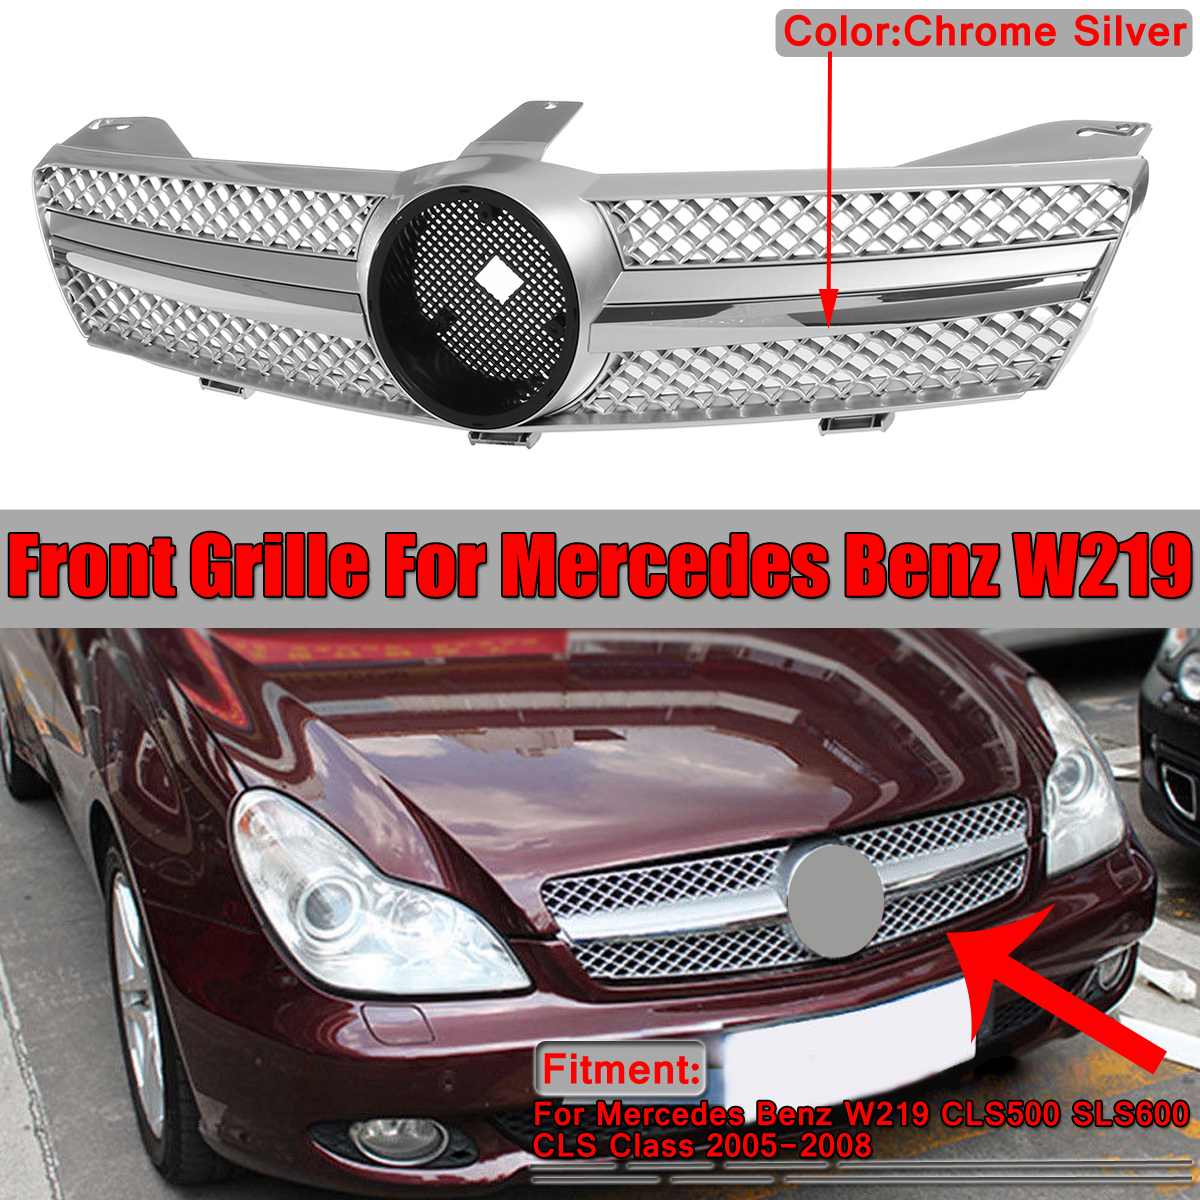 New Chrome Grille Car Front Grille Bumper Grill For Mercedes For Benz W219 CLS500 SLS600 CLS Class 2005-2008 Without EmblemNew Chrome Grille Car Front Grille Bumper Grill For Mercedes For Benz W219 CLS500 SLS600 CLS Class 2005-2008 Without Emblem